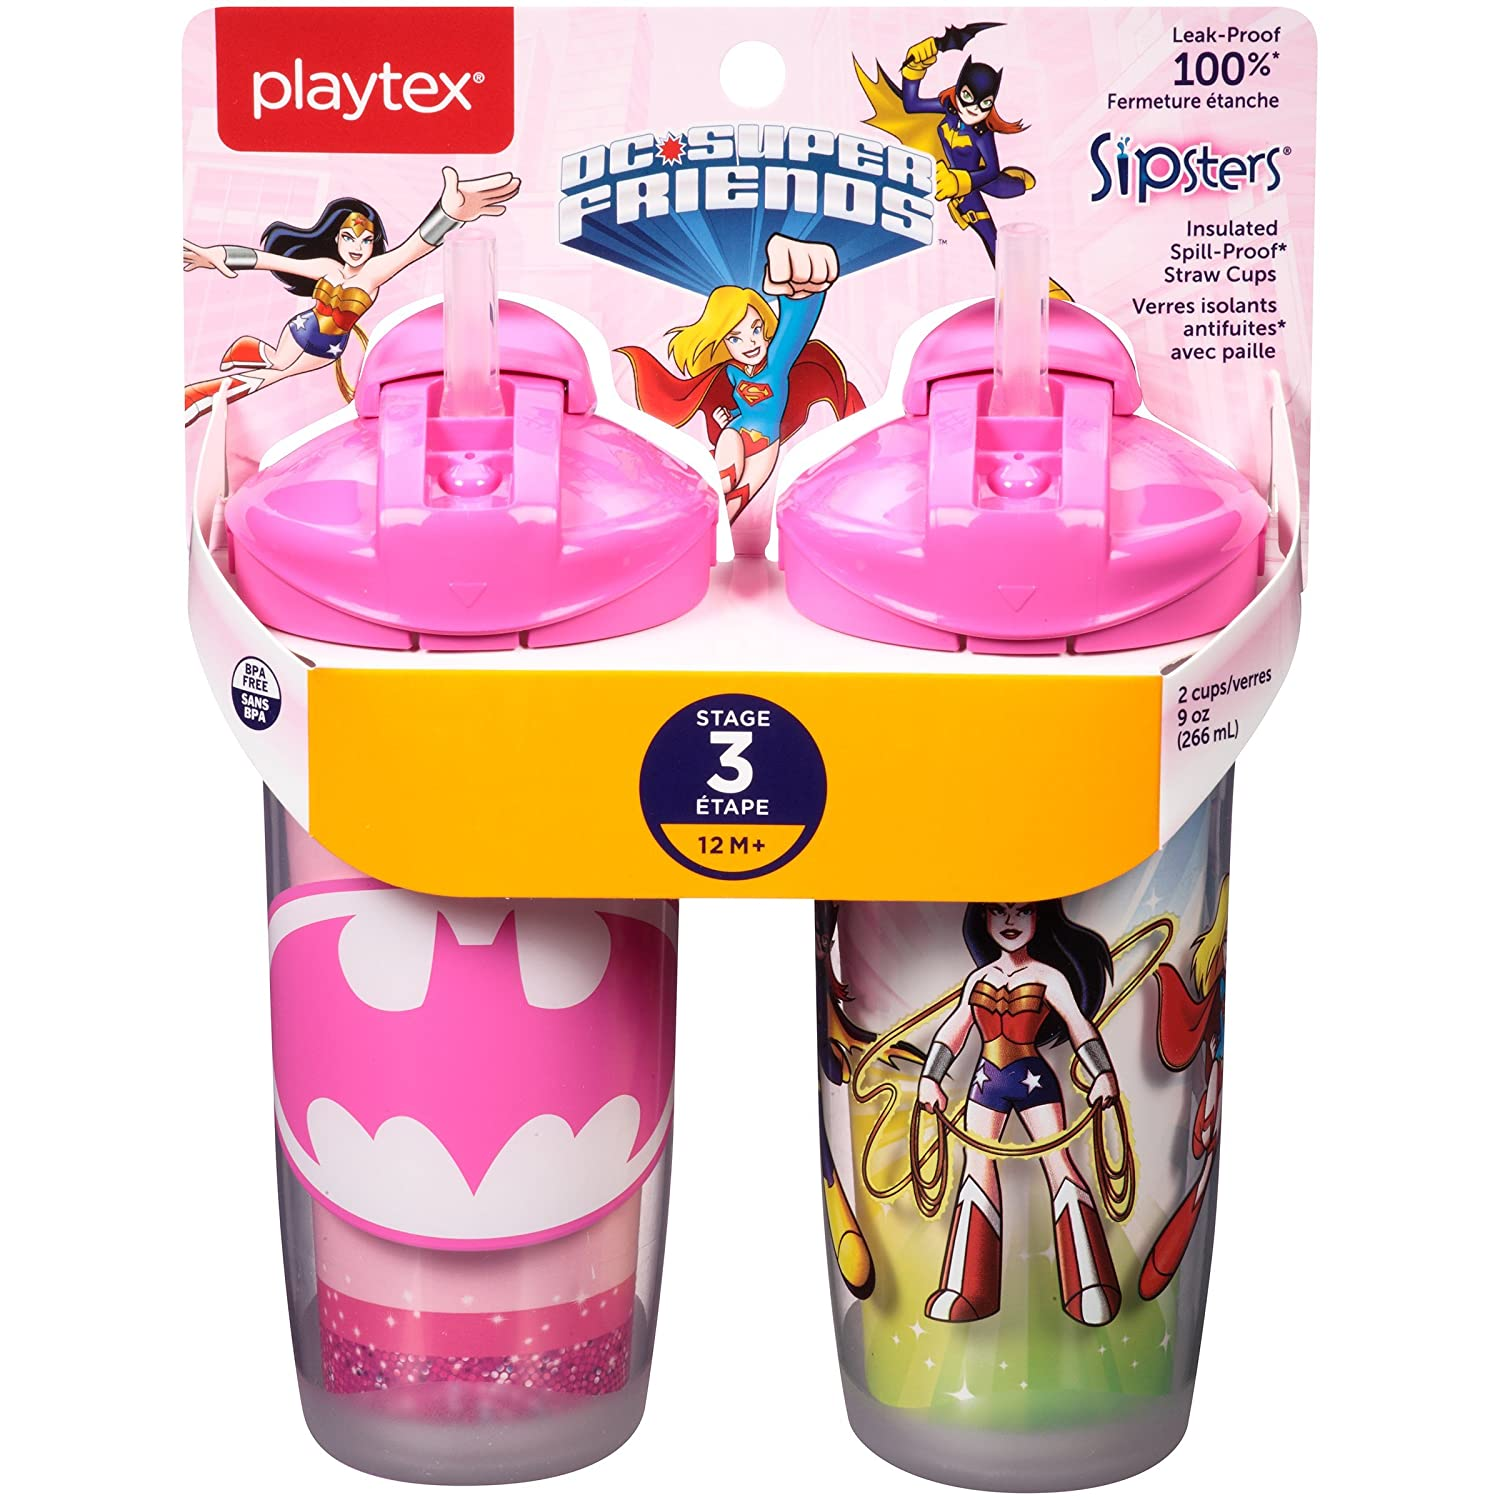 Playtex Sipsters Stage 3 Insulated Spout Sippy Cups For Girls  9 Ounce  2 Count